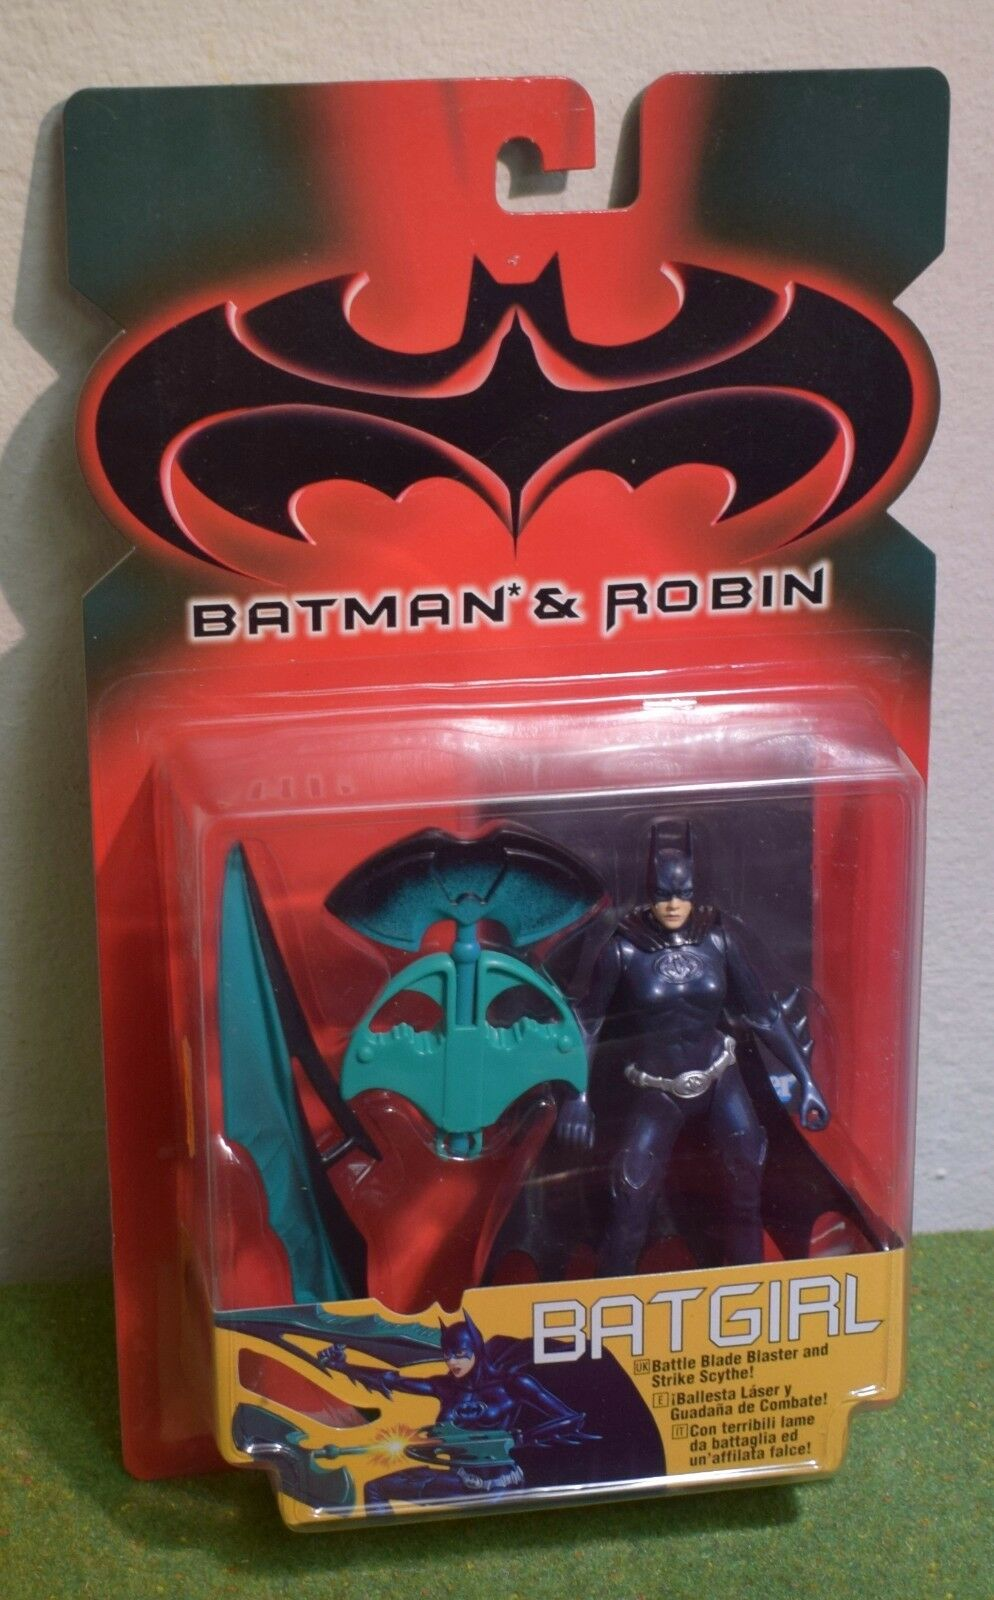 KENNER BATMAN & ROBIN BATGIRL ACTION FIGURE